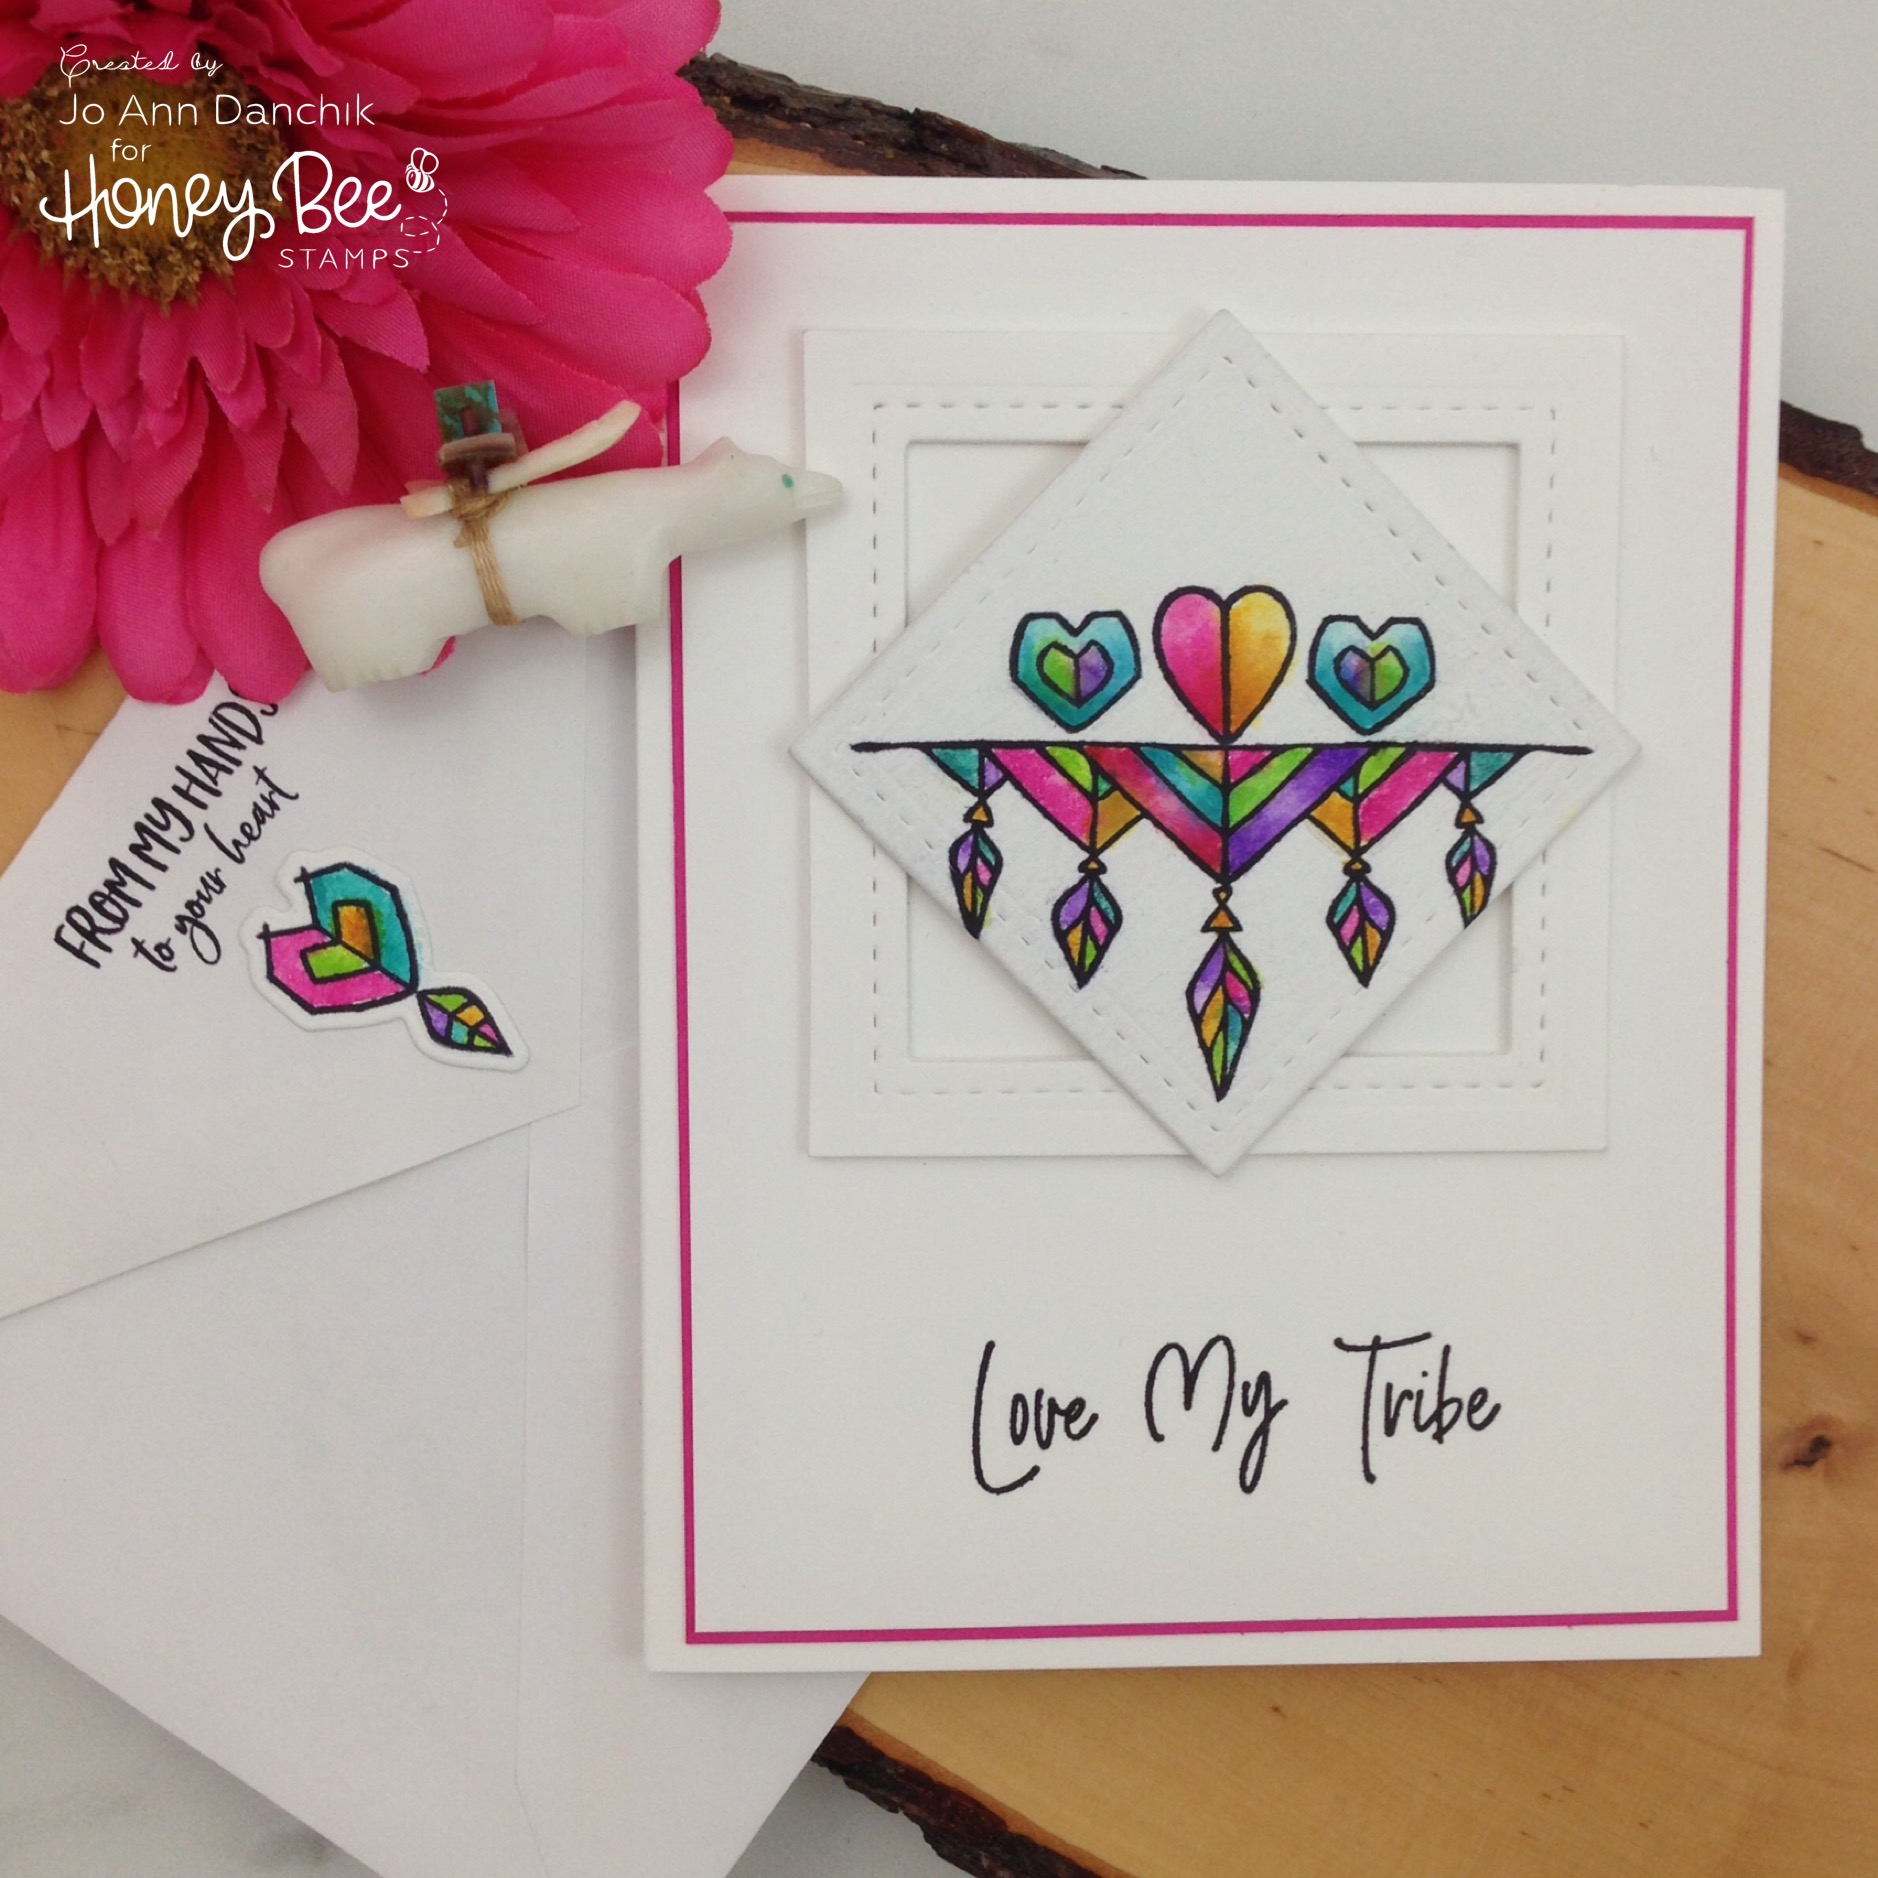 Creative Sundays With Jo Ann: Love My Tribe